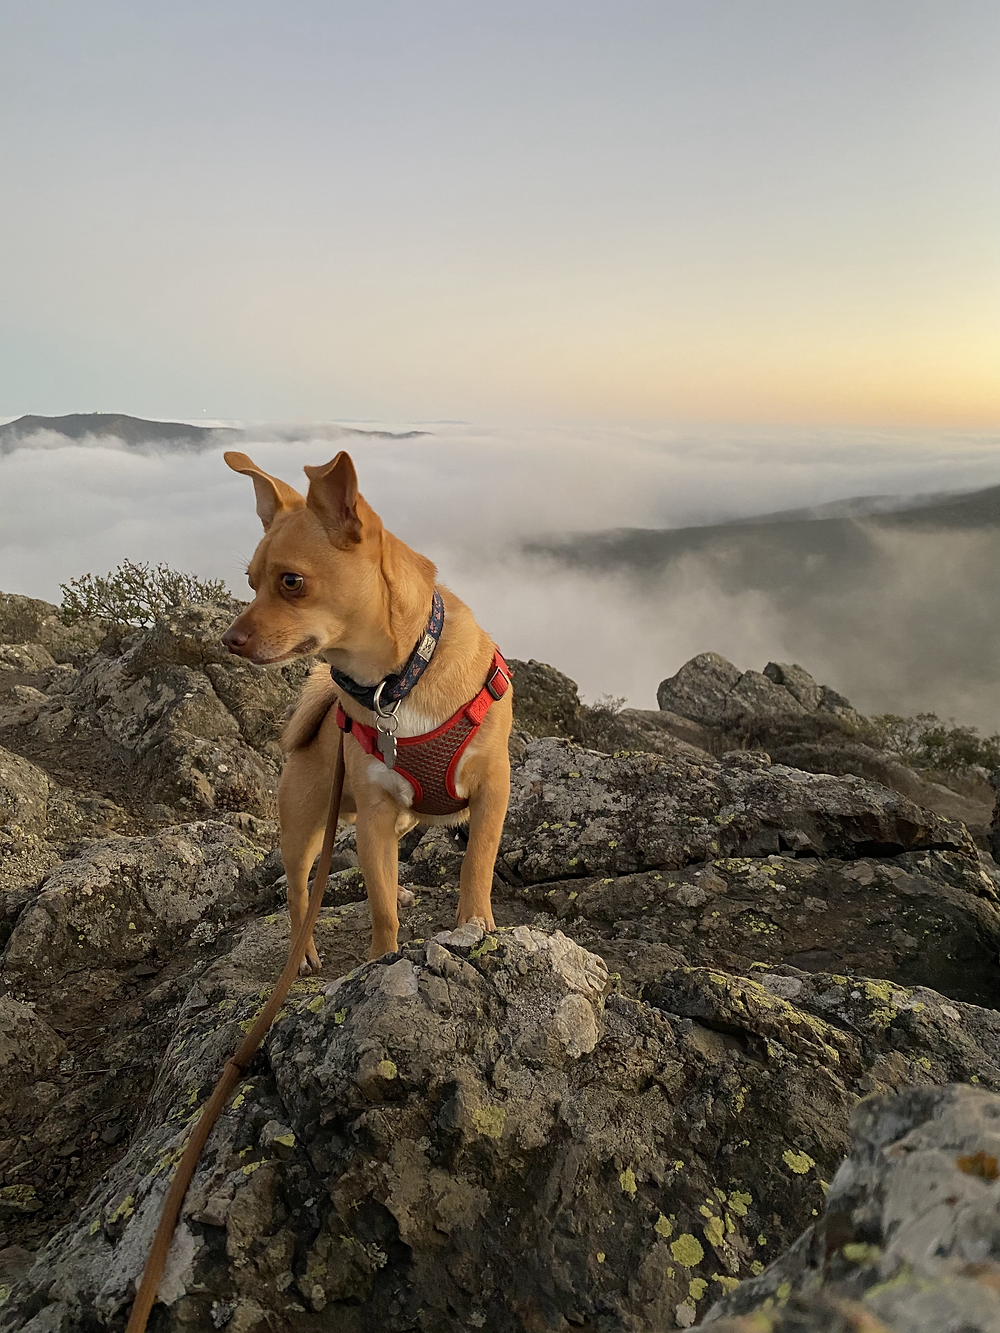 Pepper, a mighty chihuahua-ish puppy lording over the peak of Mount Tamalpias as the fog rolls in below